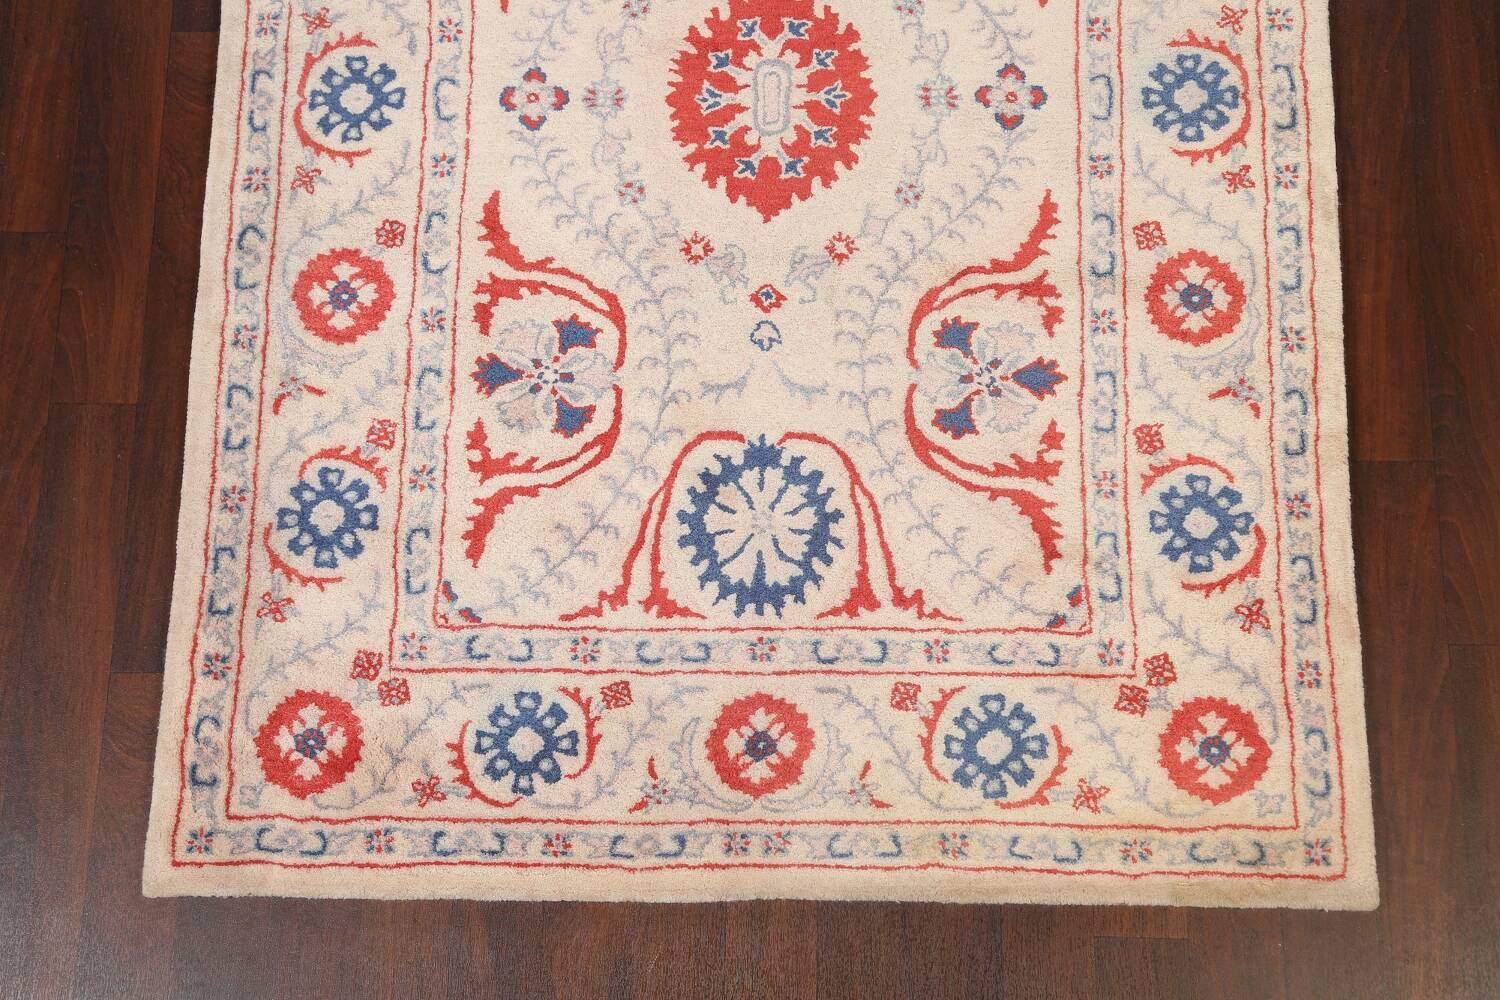 Hand-Tufted Floral Area Rug 6x8 image 5